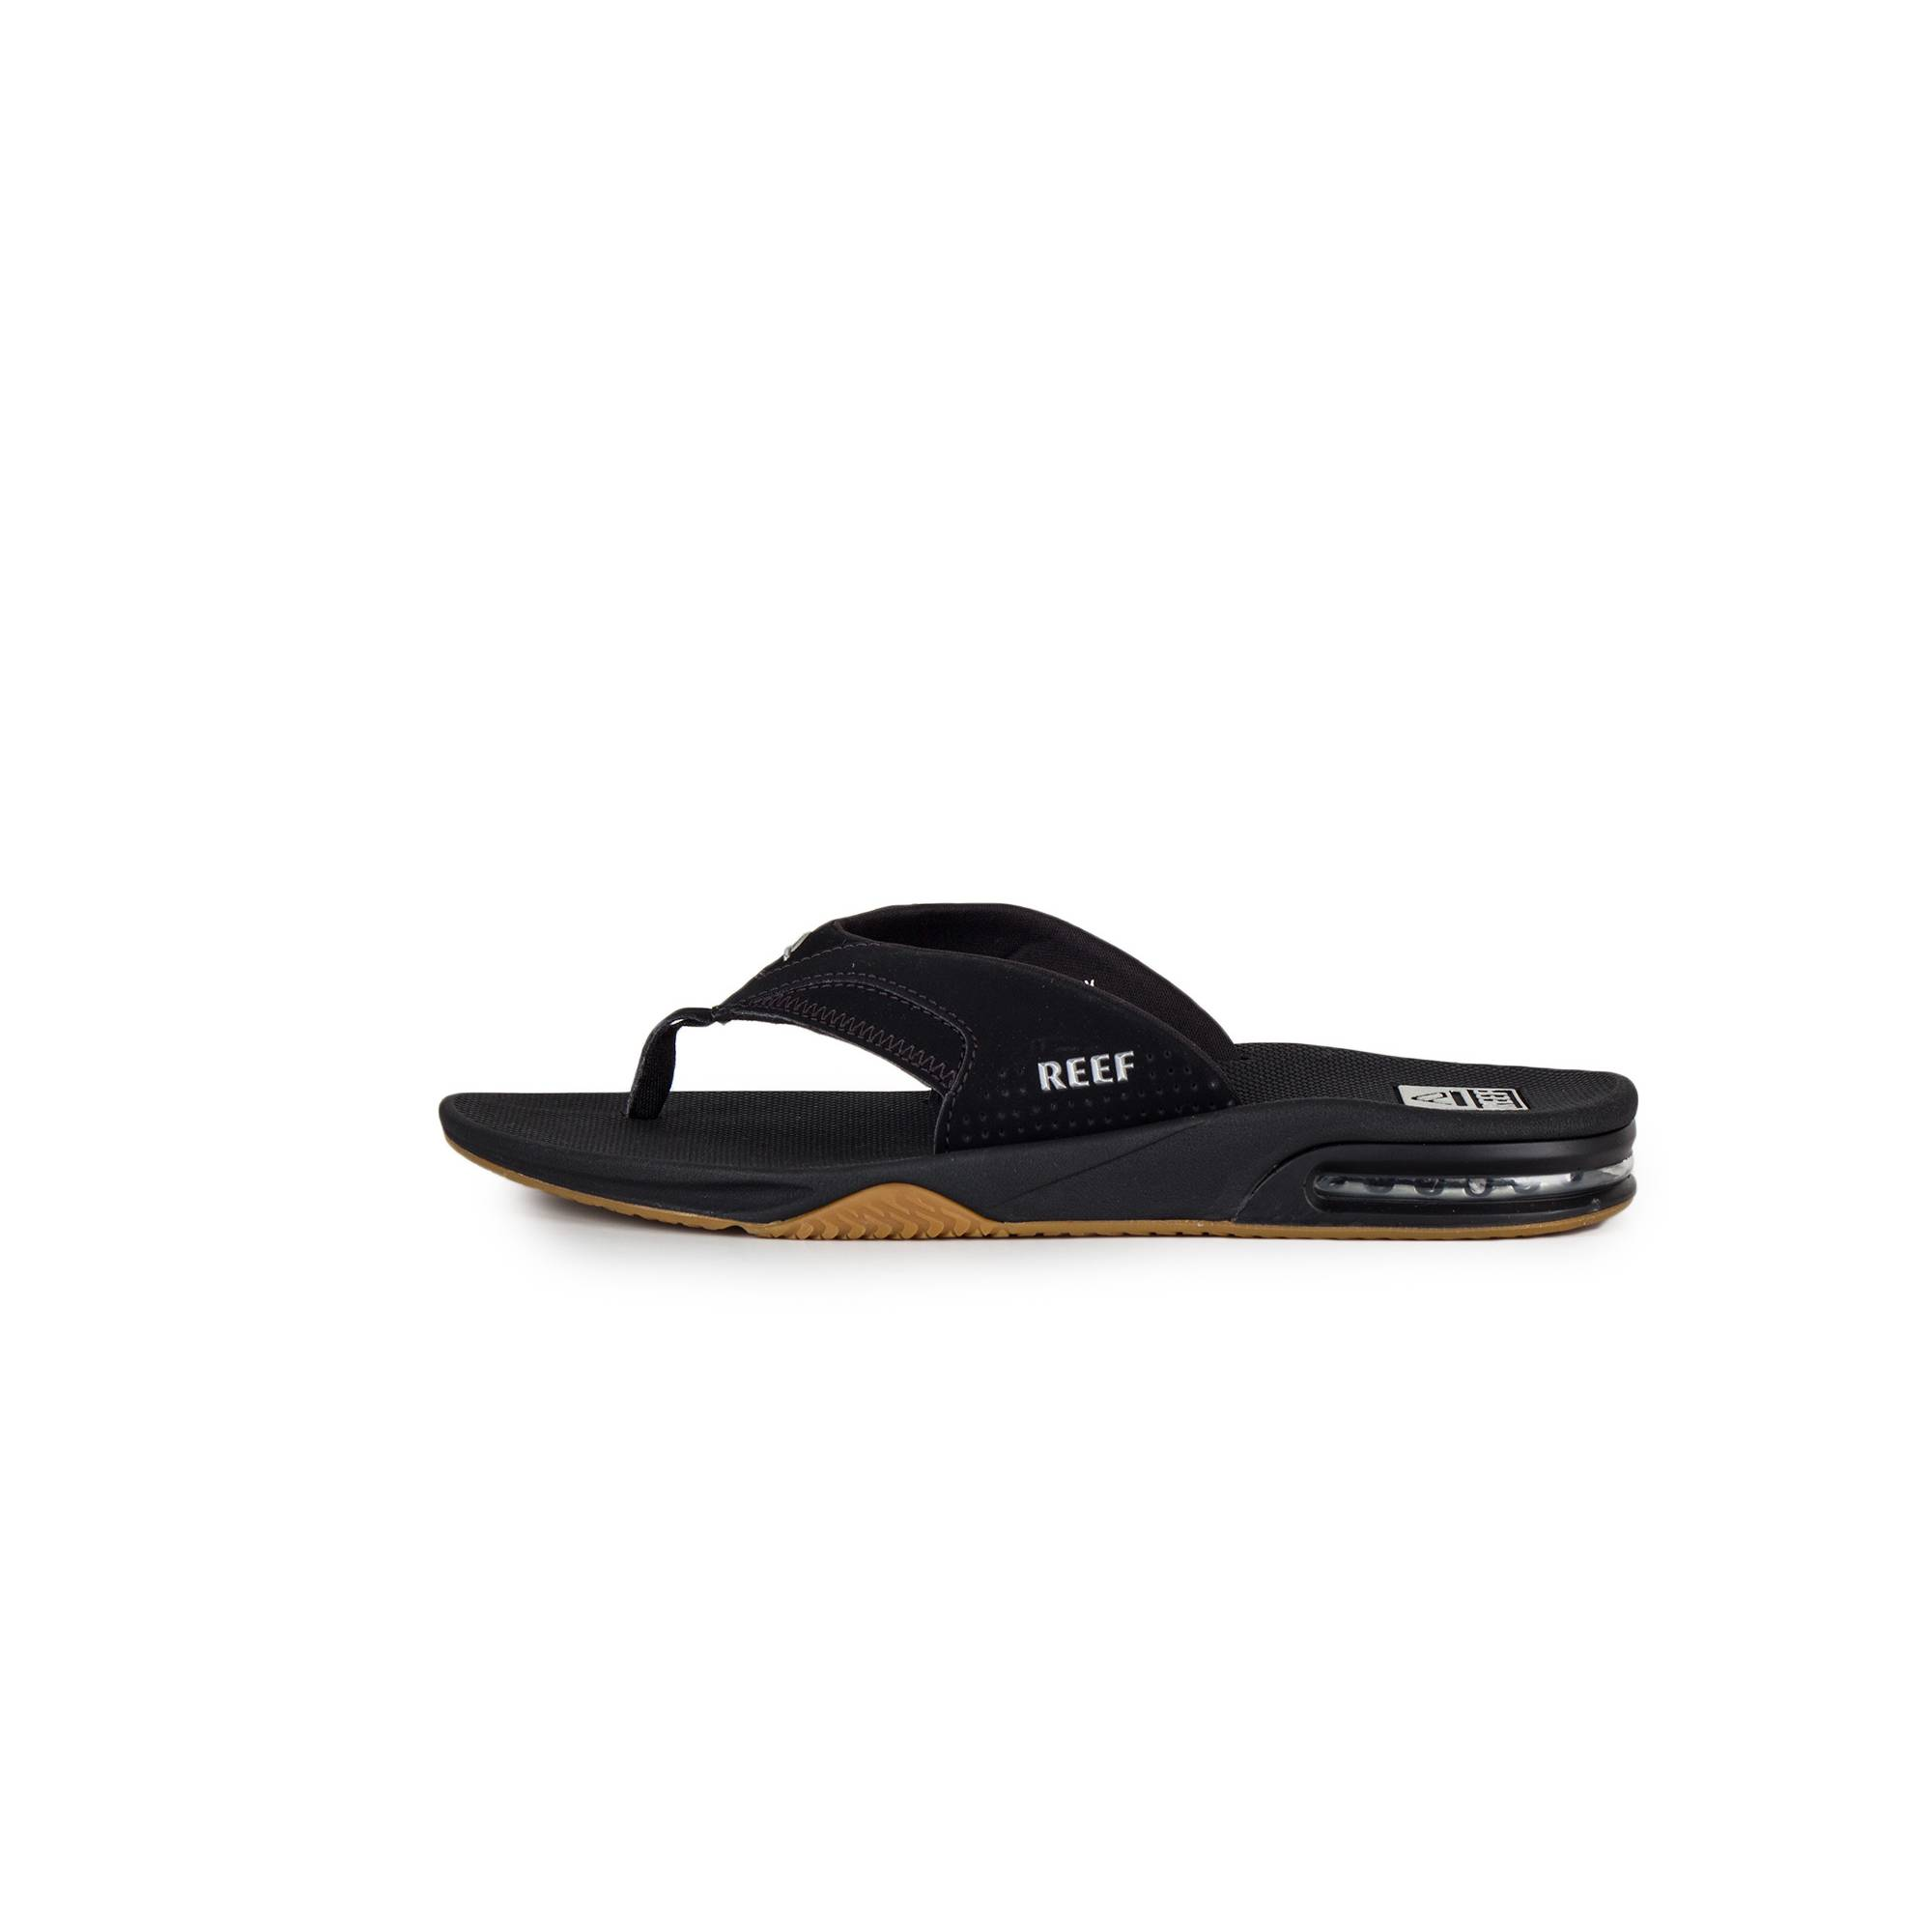 a7ed1a258ee4 REEF - Fanning Vintage Men s Black Sandals. Loading zoom · Display all  pictures